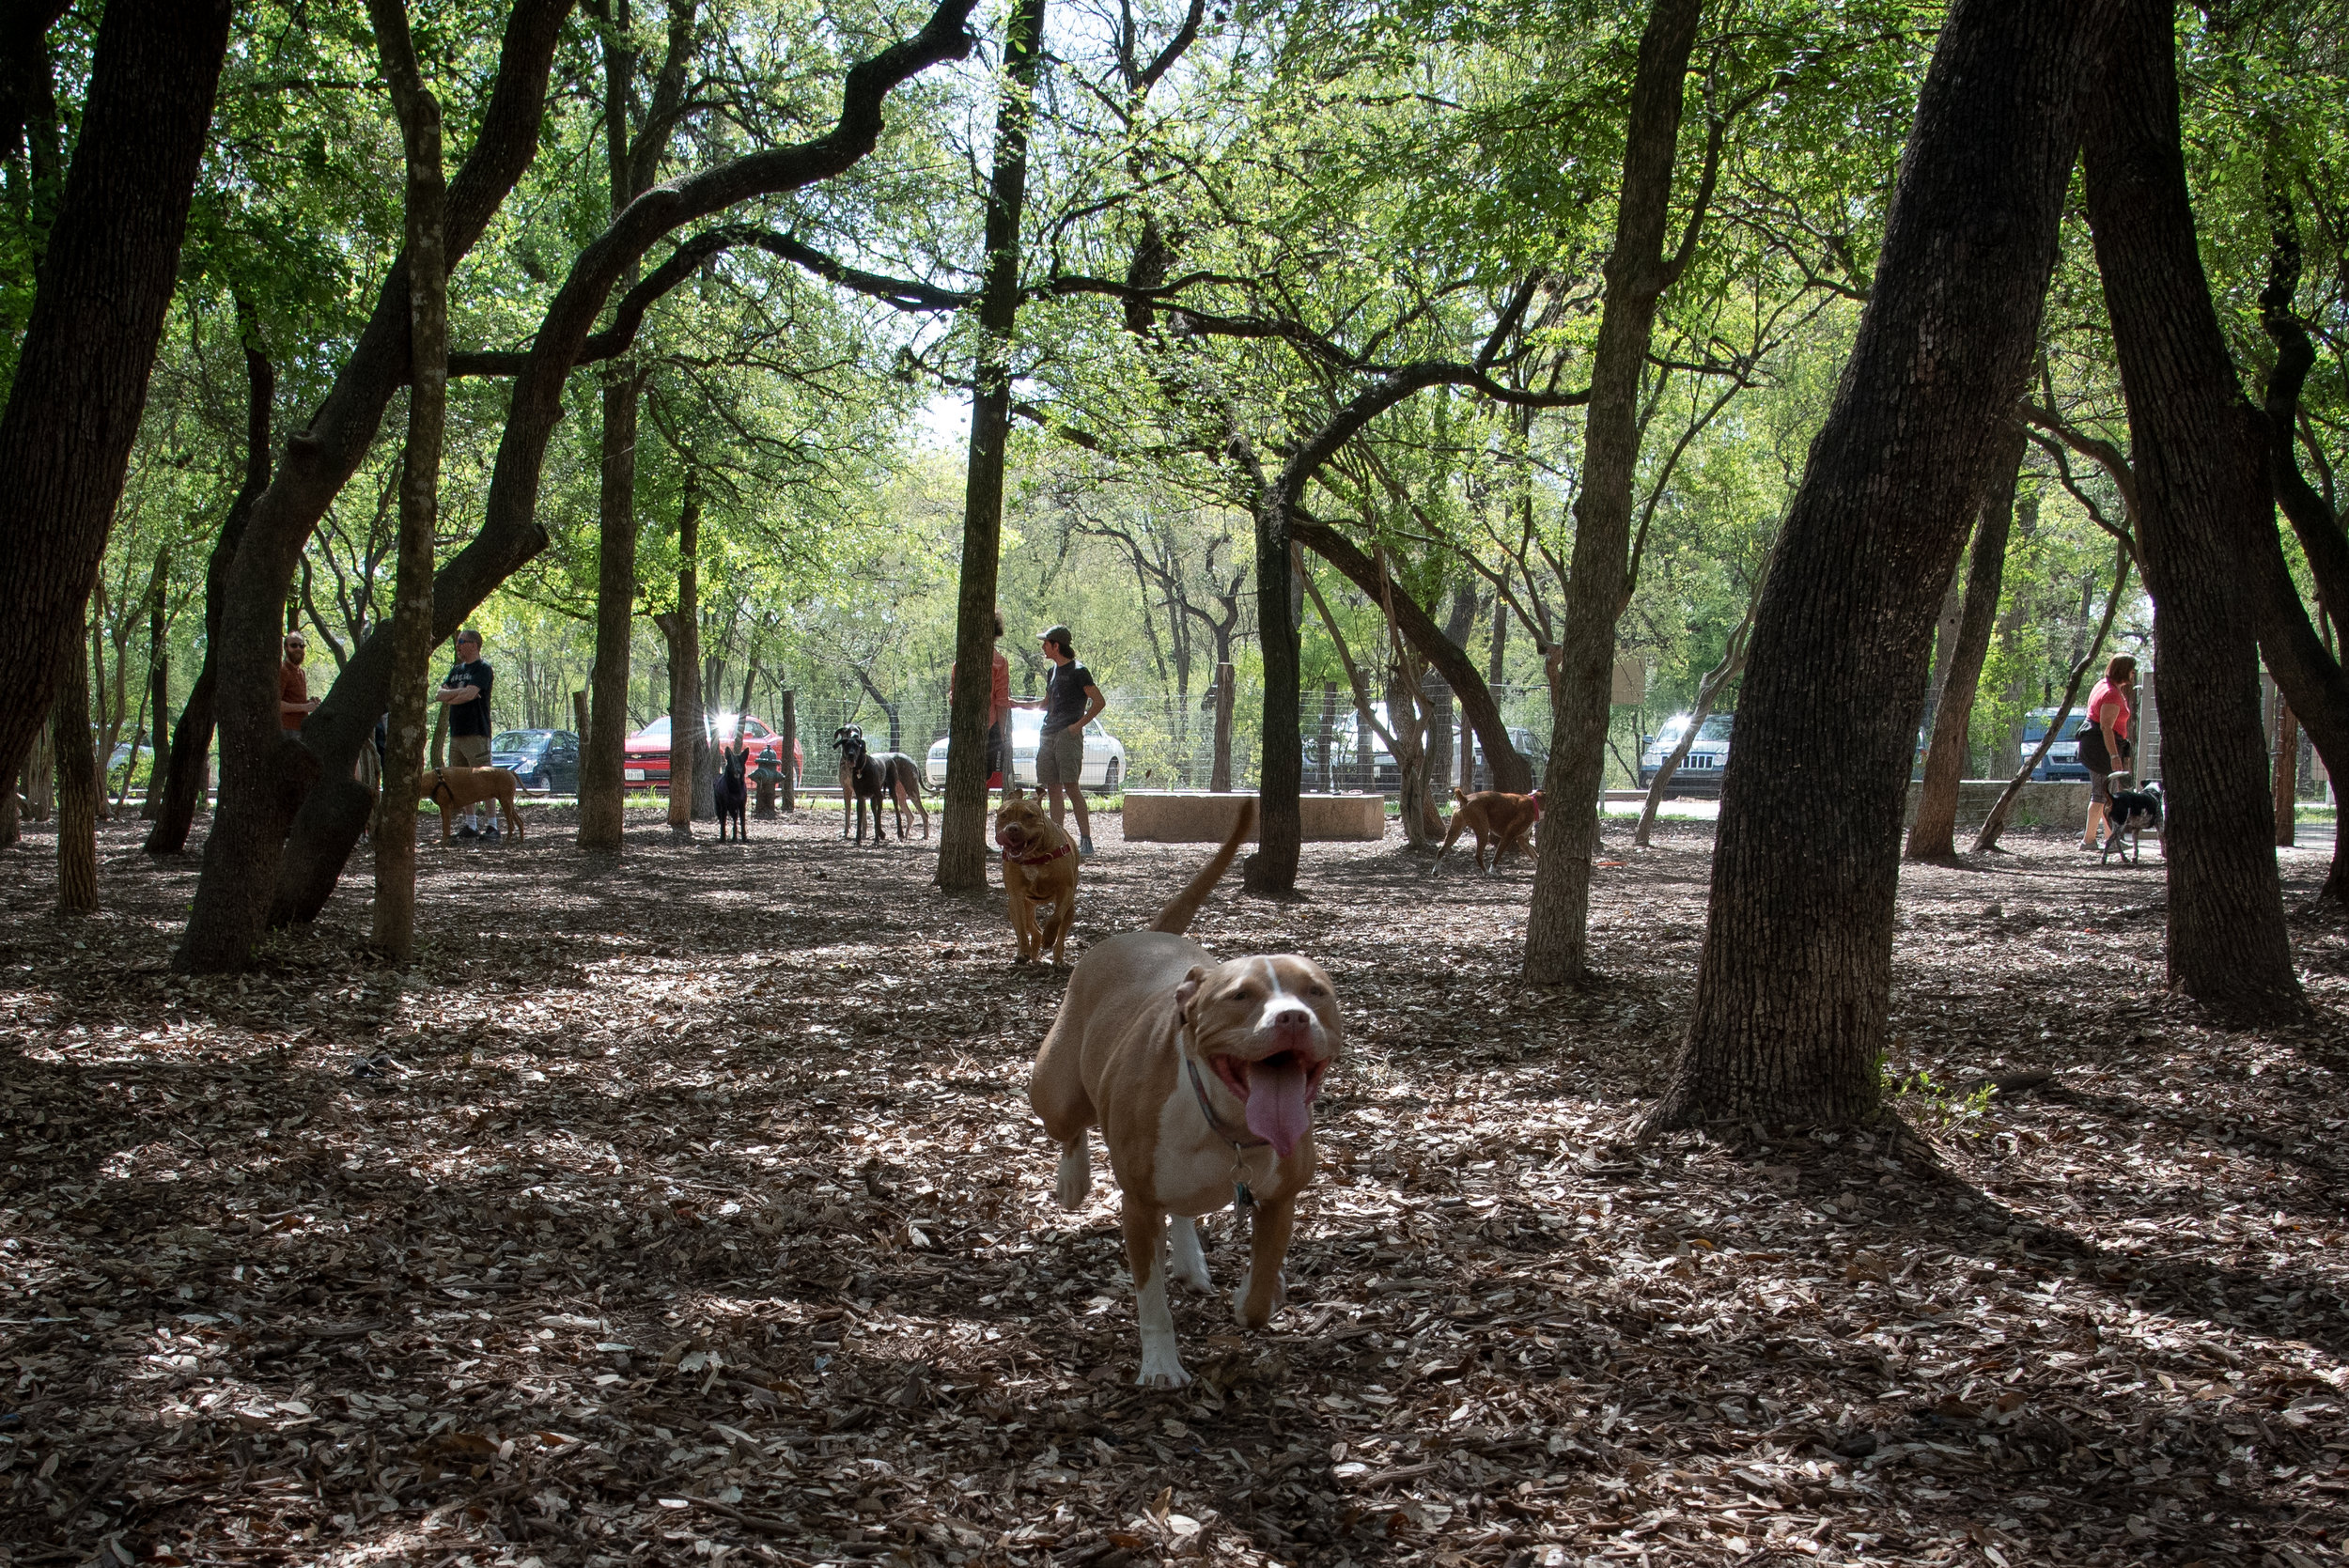 Visit the Dog parks - Take your four-legged friends out for some fun in our shady dog parks.